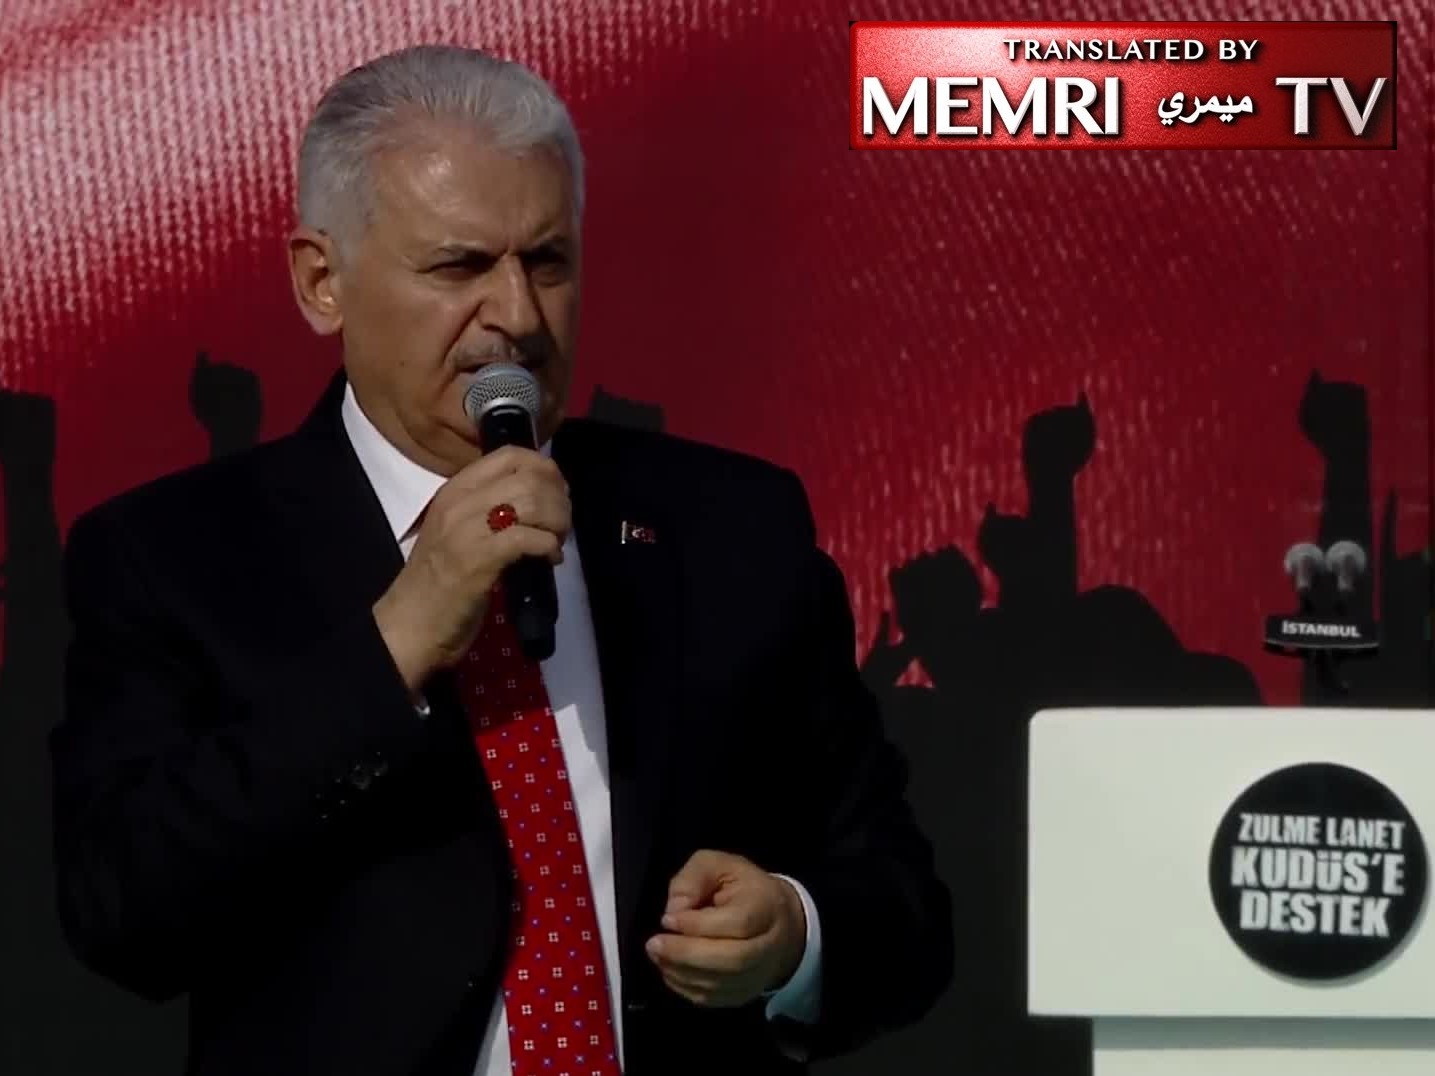 Erdoğan and Other Senior Turkish Politicians in Pro-Gaza Rally; PM Yıldırım: The State of Israel Emulates Hitler and Mussolini